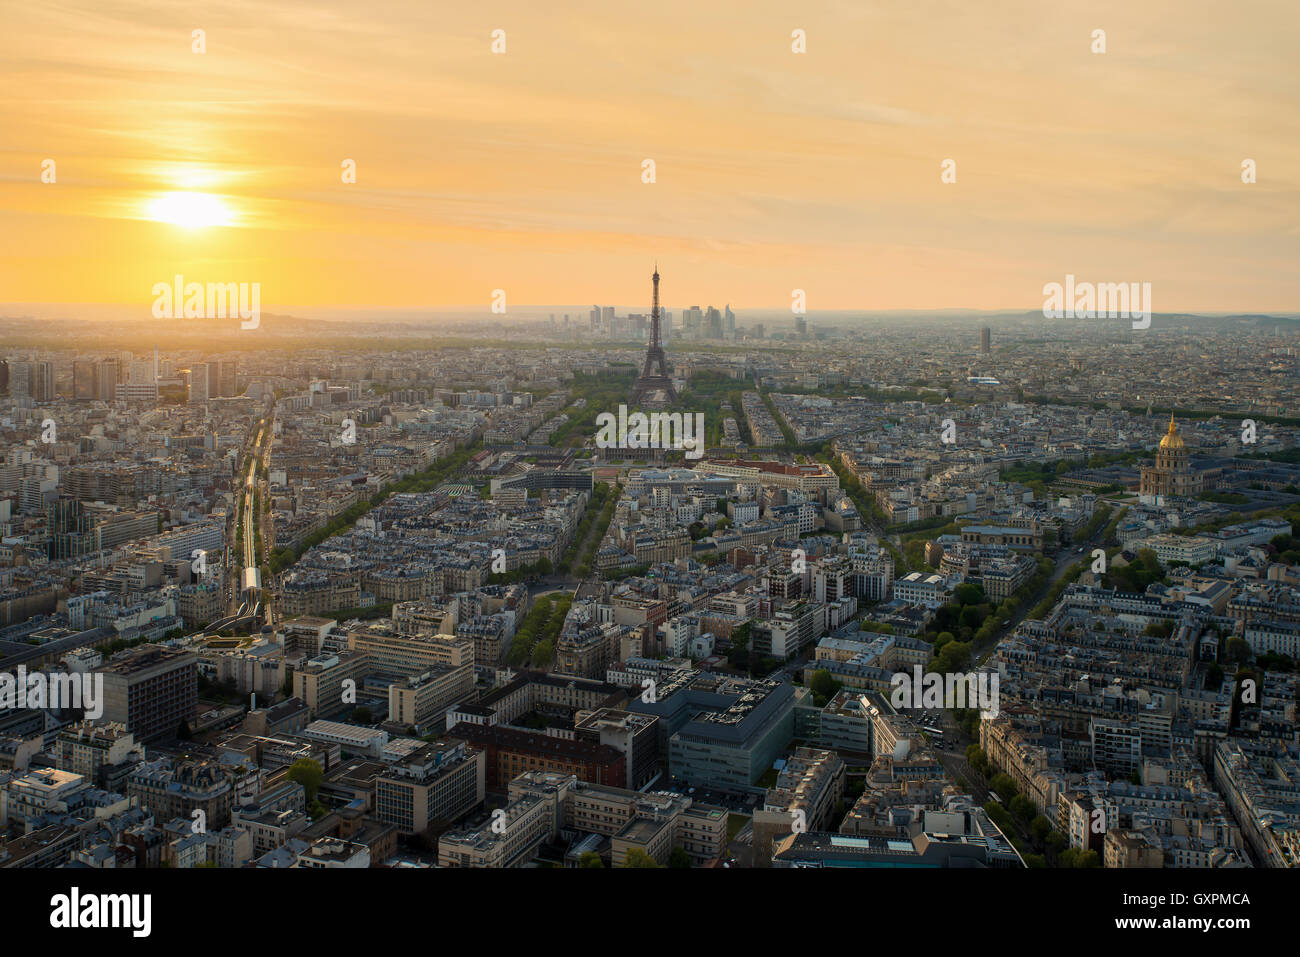 Aerial view of Paris with Eiffel tower at sunset in Paris, France. Eiffel tower is international landmark in Paris, Stock Photo